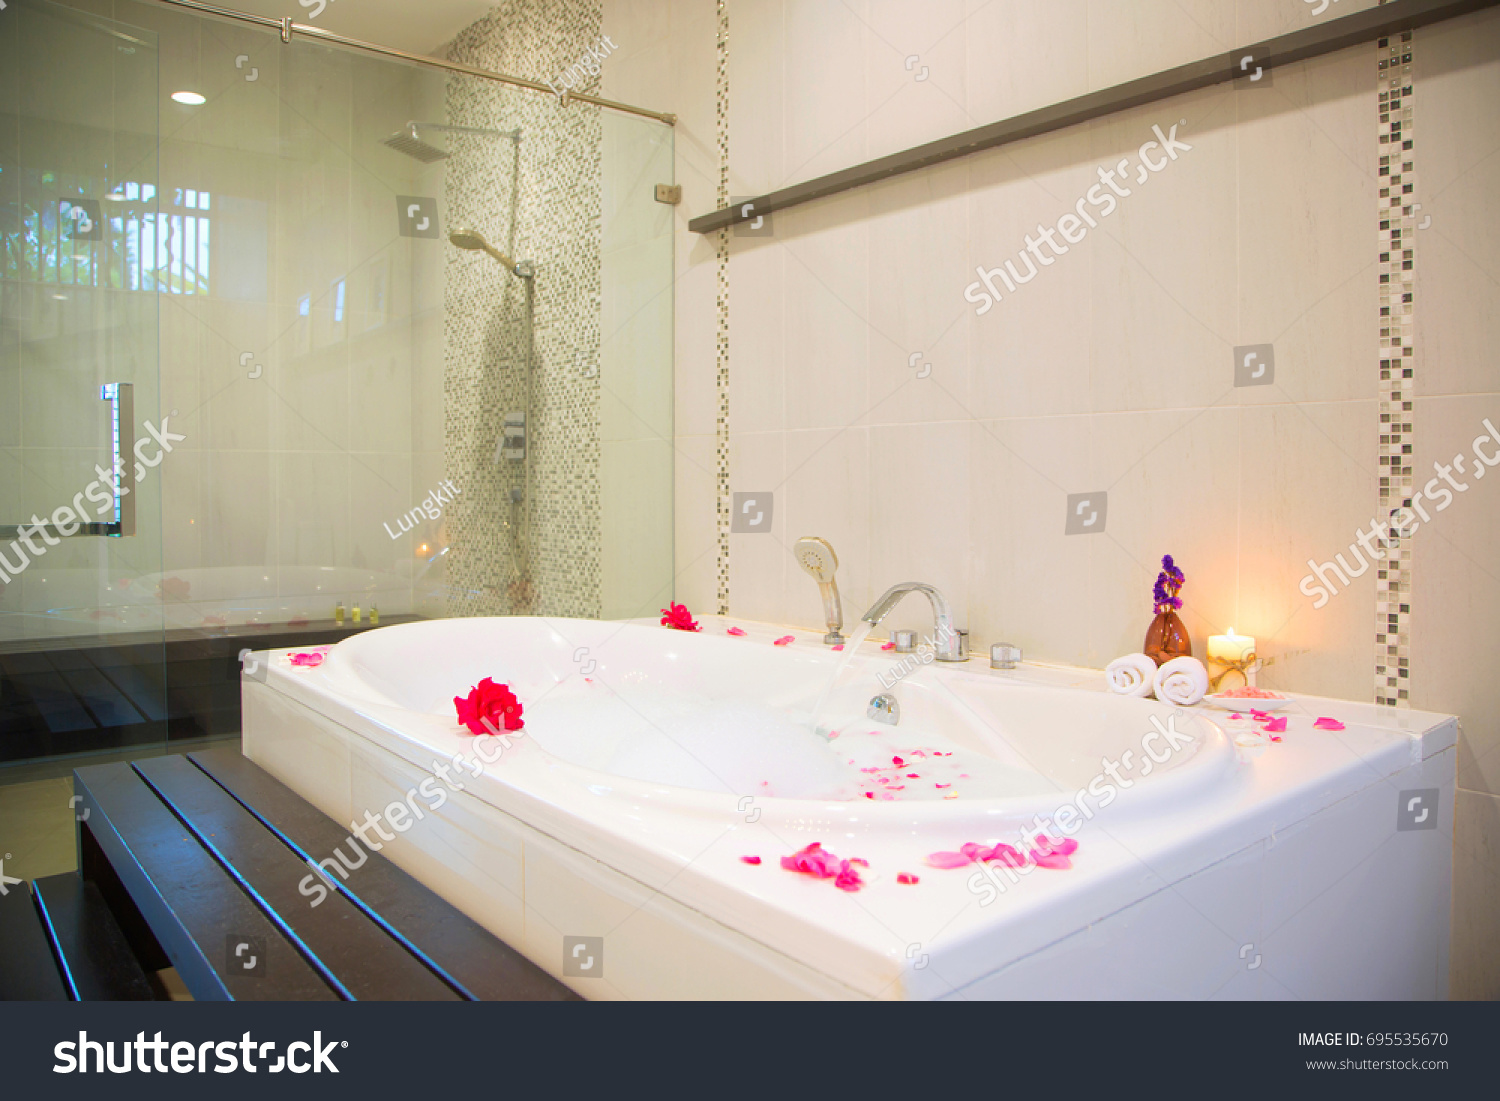 Rose Petals Put Bathtub Romantic Bathroom Stock Photo (Royalty Free ...